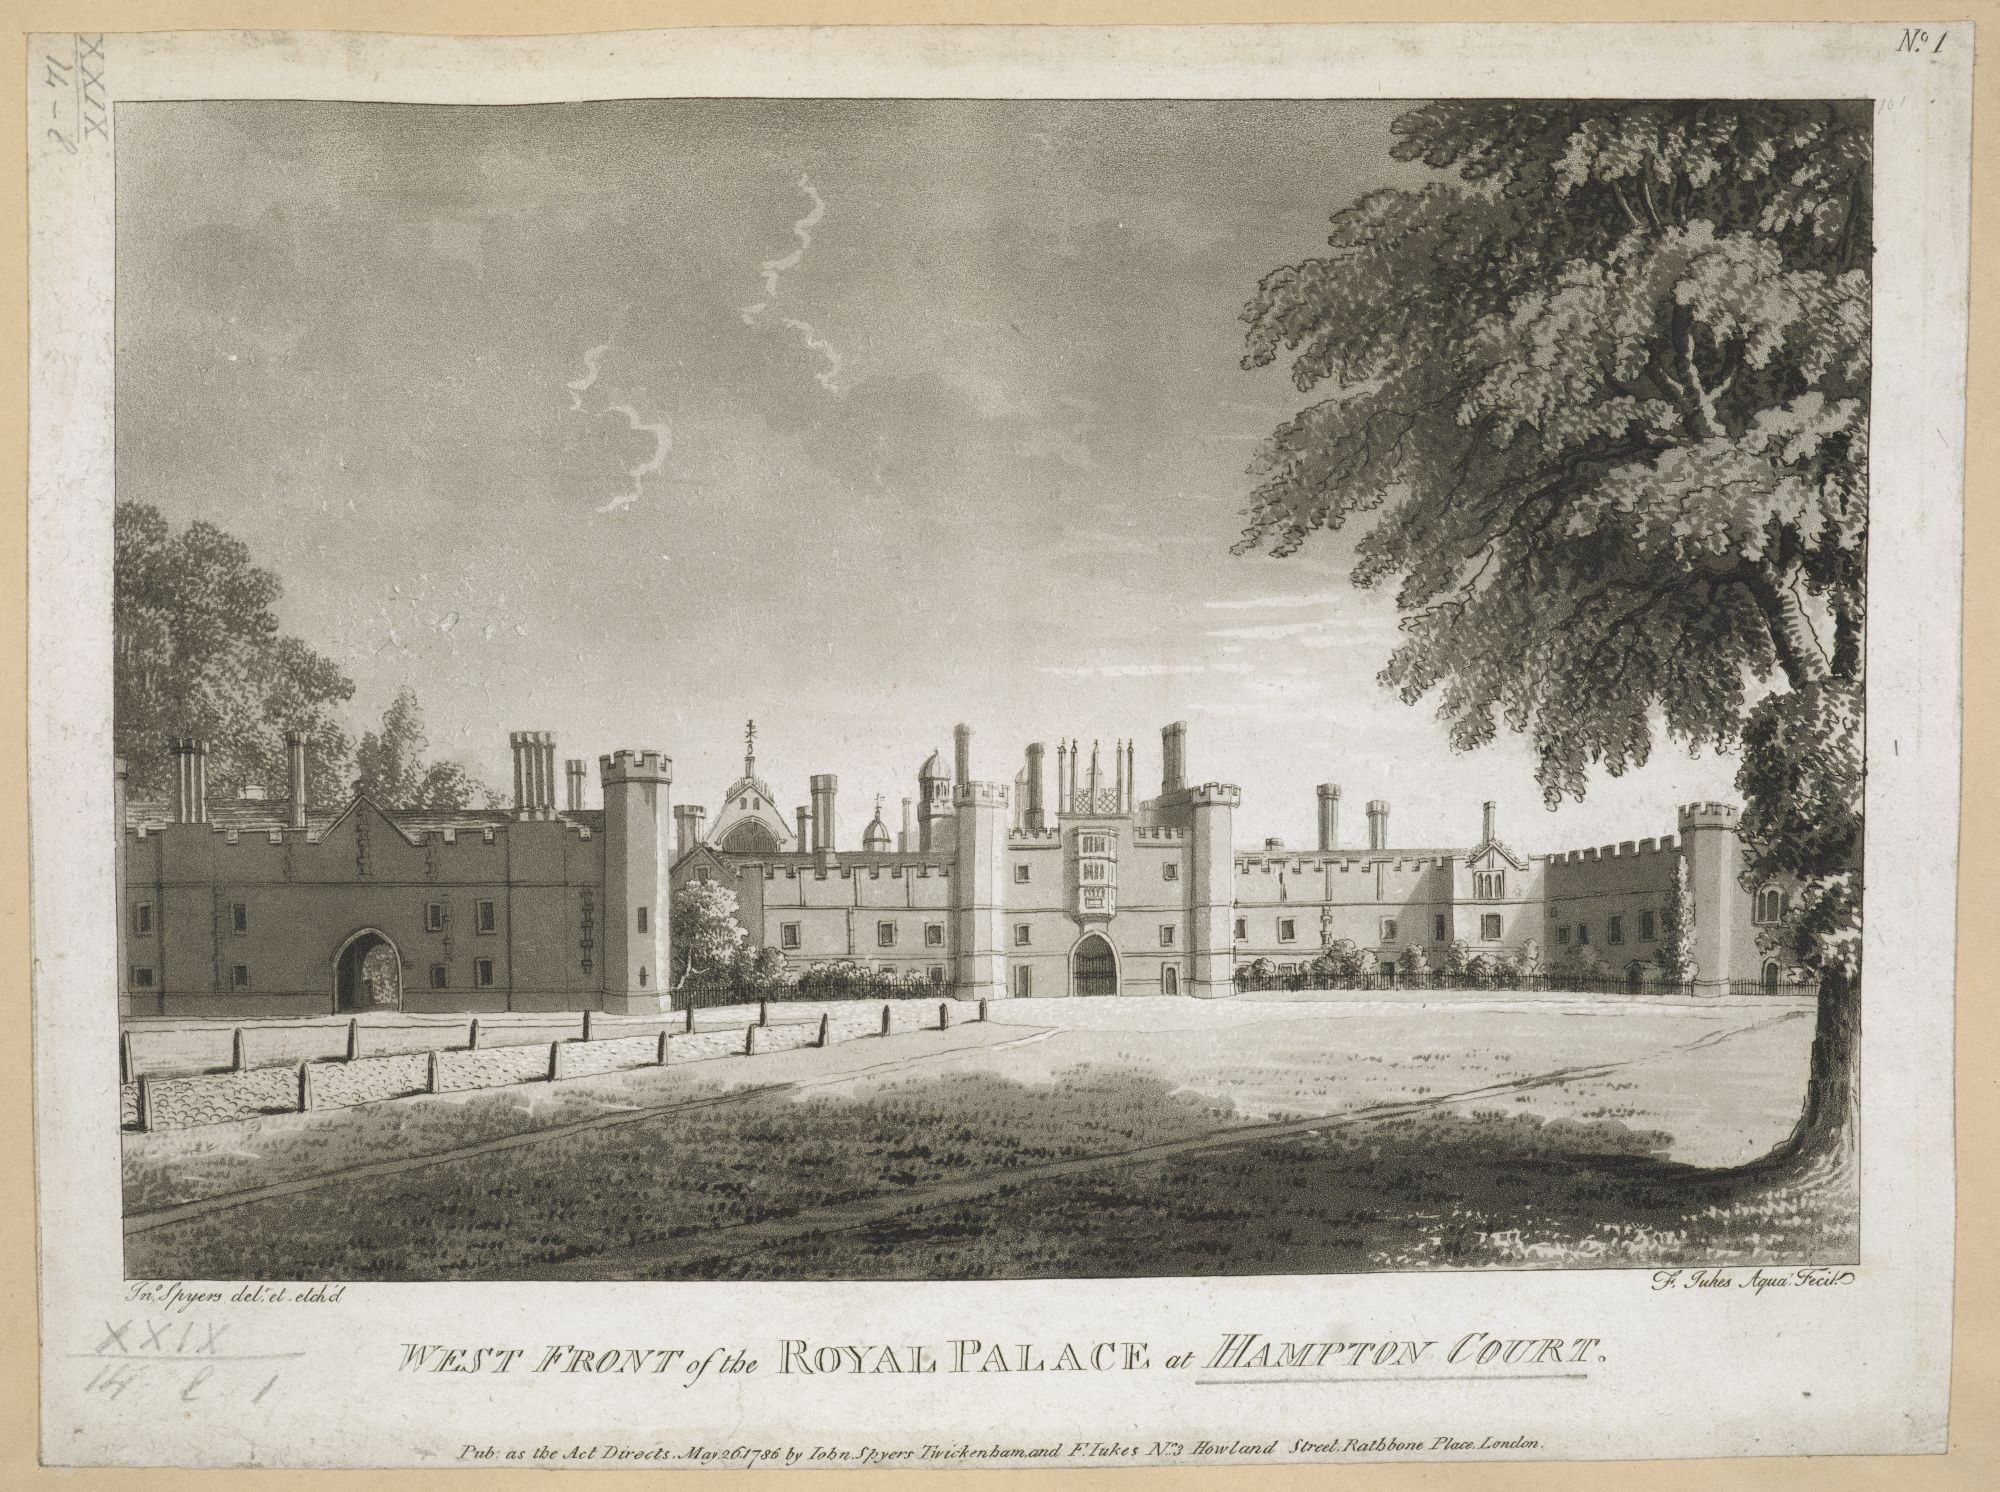 West Front of the Royal Palace of Hampton Court, by John Spyers.